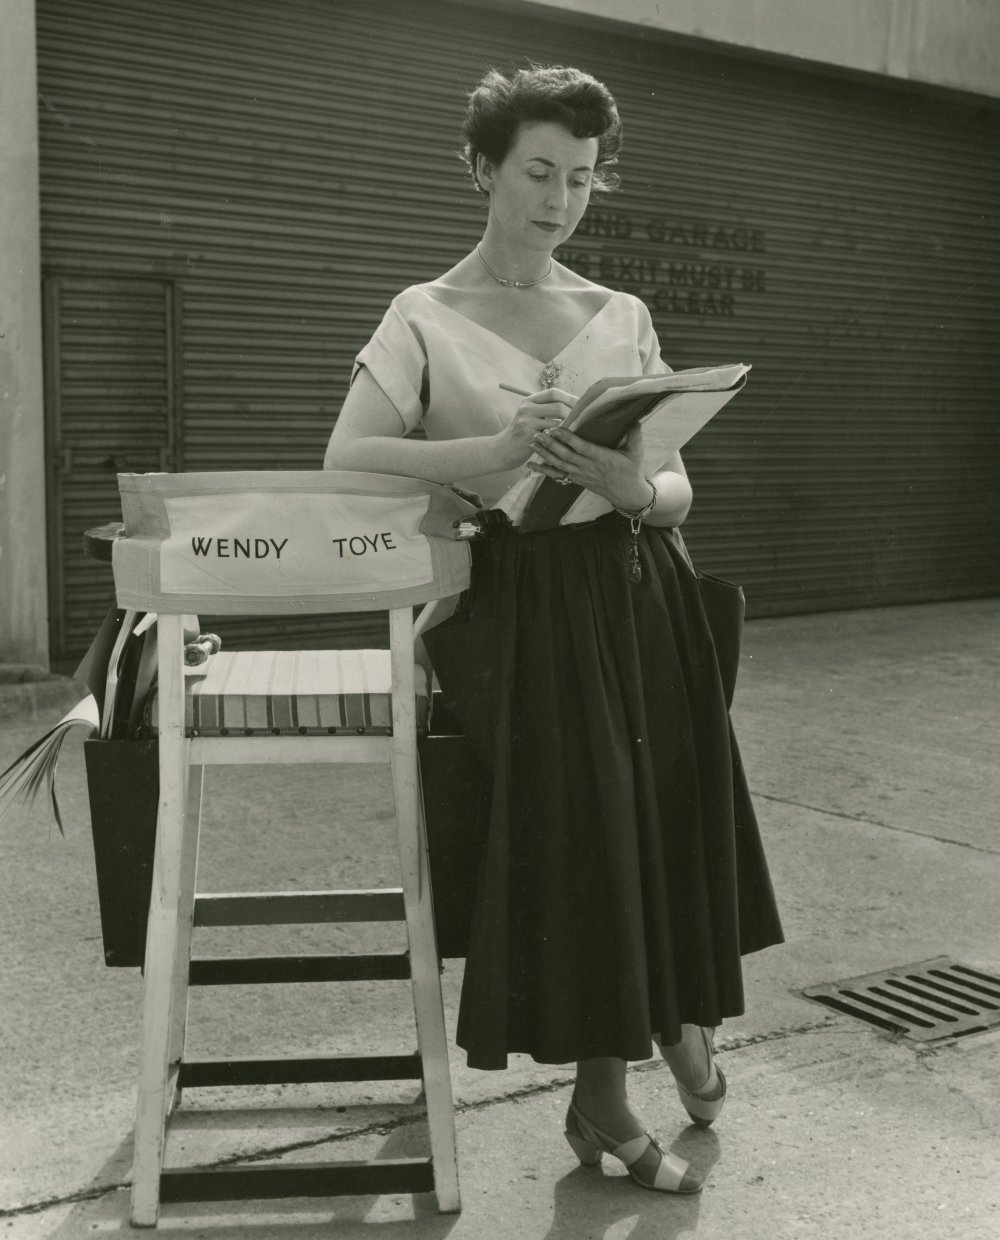 <strong>Wendy Toye</strong>, director, 'In the Picture', one of the three segments of Three Cases of Murder (1955). Toye directed nine British films, getting an Oscar nomination for her short film On the Twelfth Day… (1955).